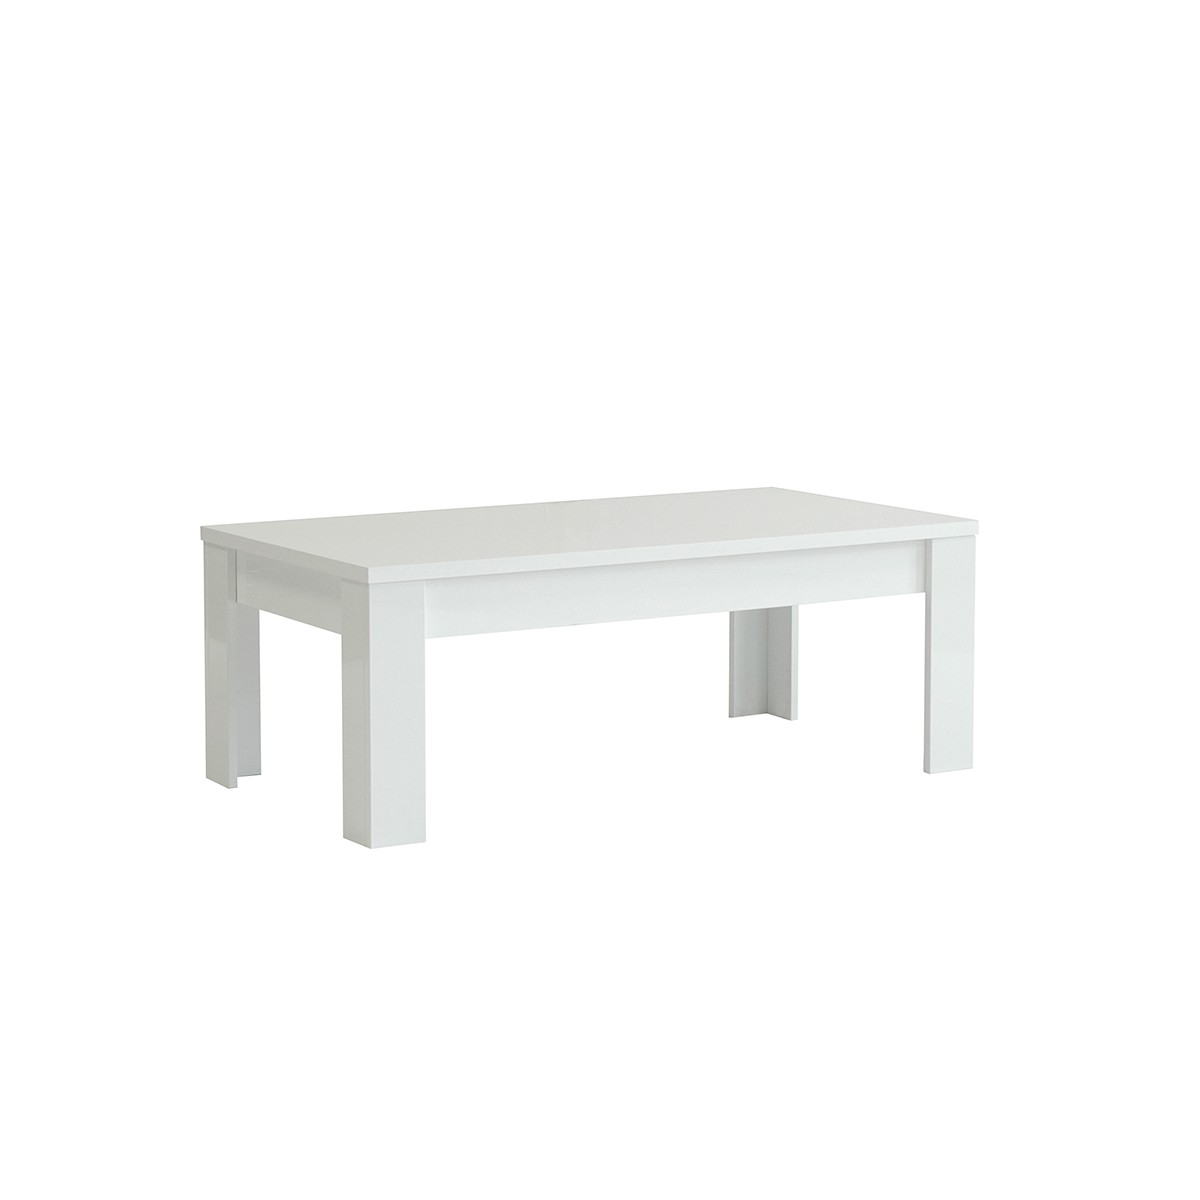 Table basse laqu blanc 122 cm amalfi mooviin for Petite table basse blanc laque